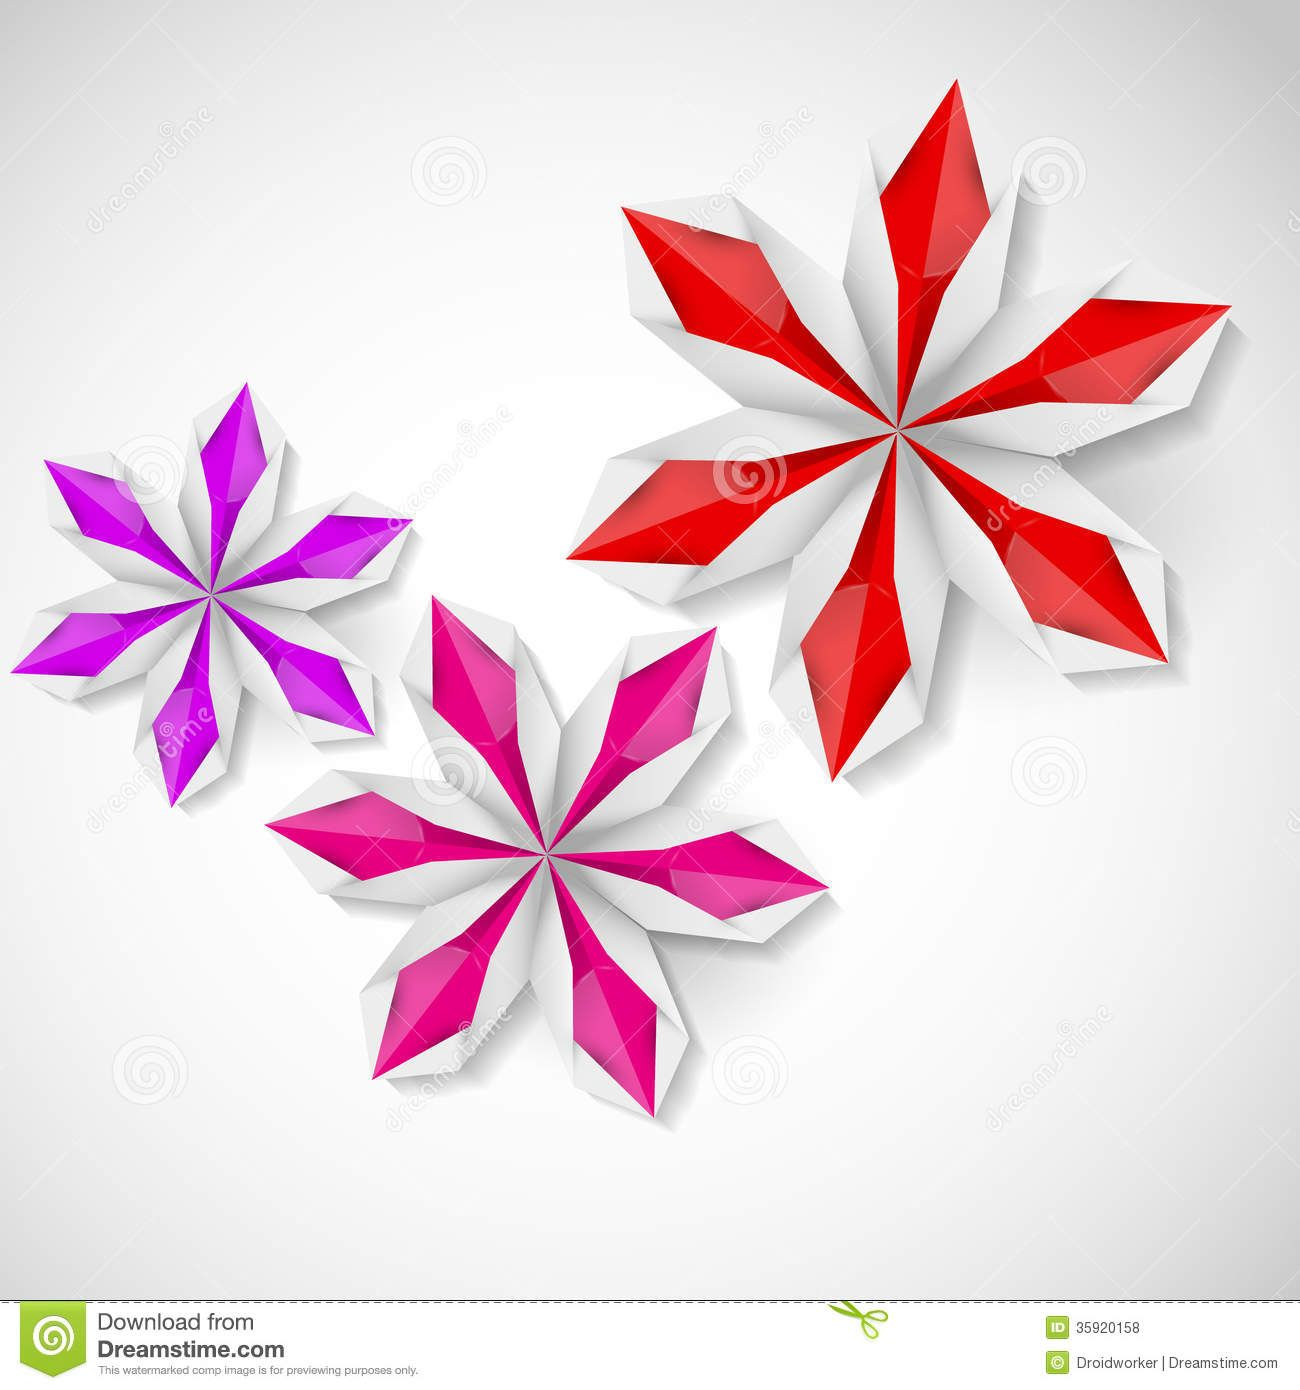 Flat Origami Flowers Flat Origami Flower Flower Projects To Try